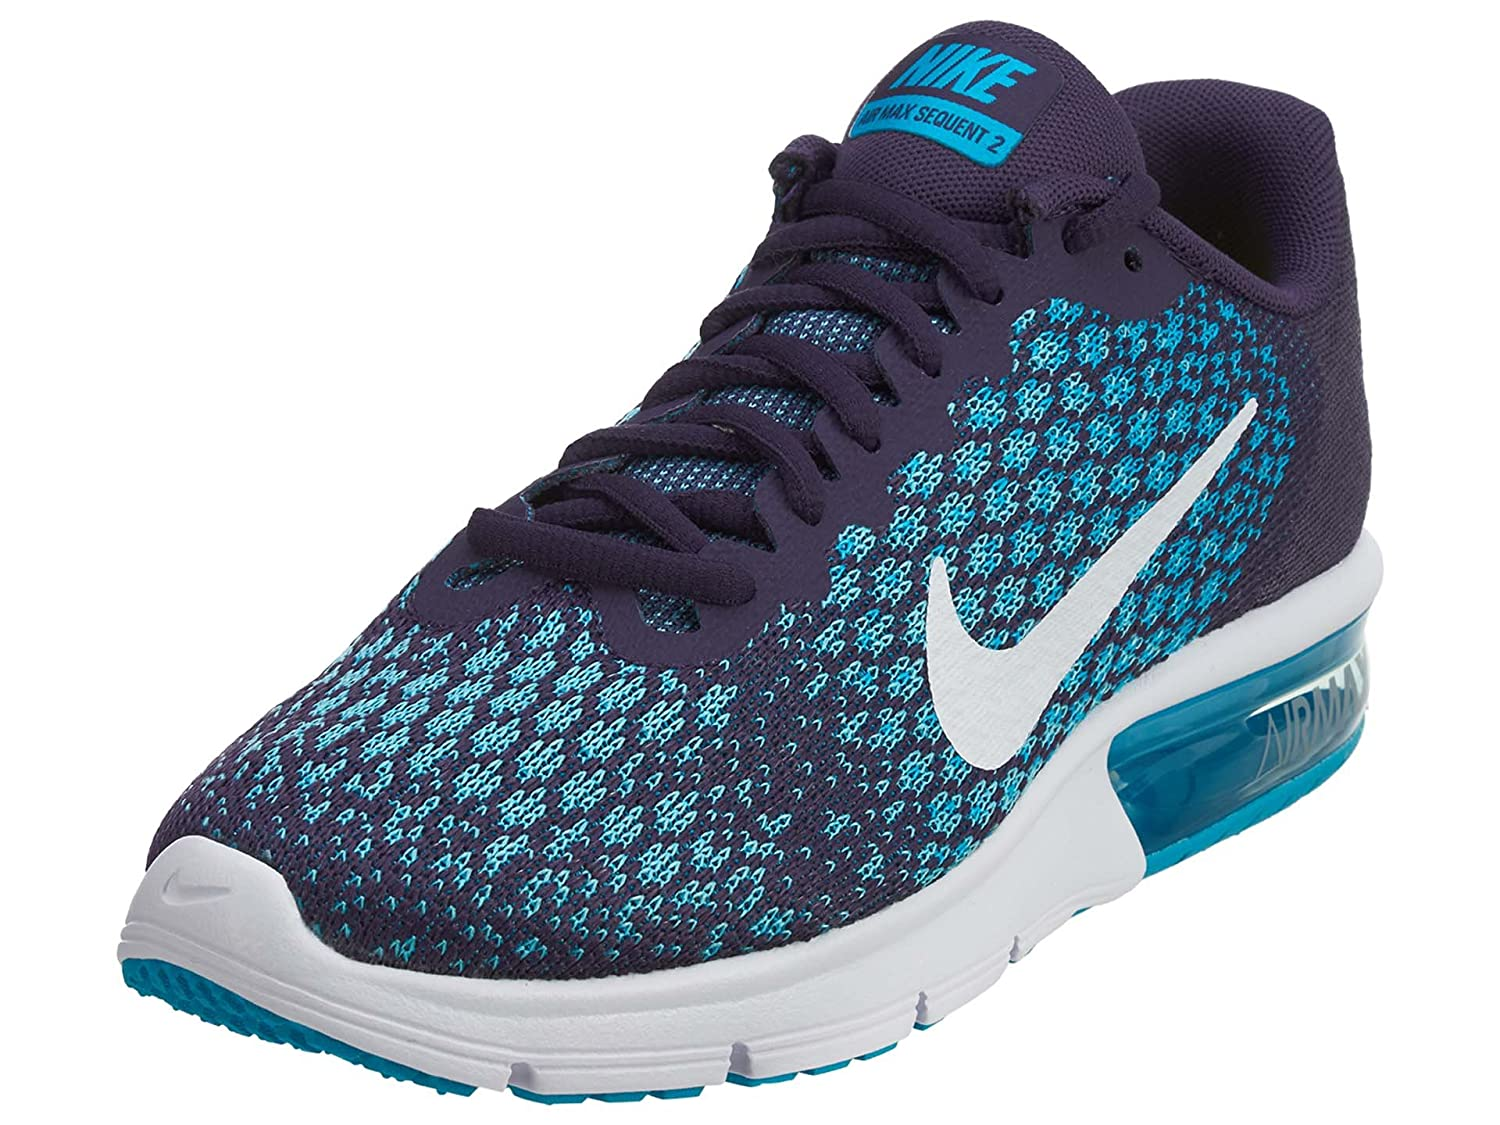 NIKE Men's Air Max Sequent 2 Running Shoe B01K2LQ8NE 10 B(M) US|Dark Raisin/White